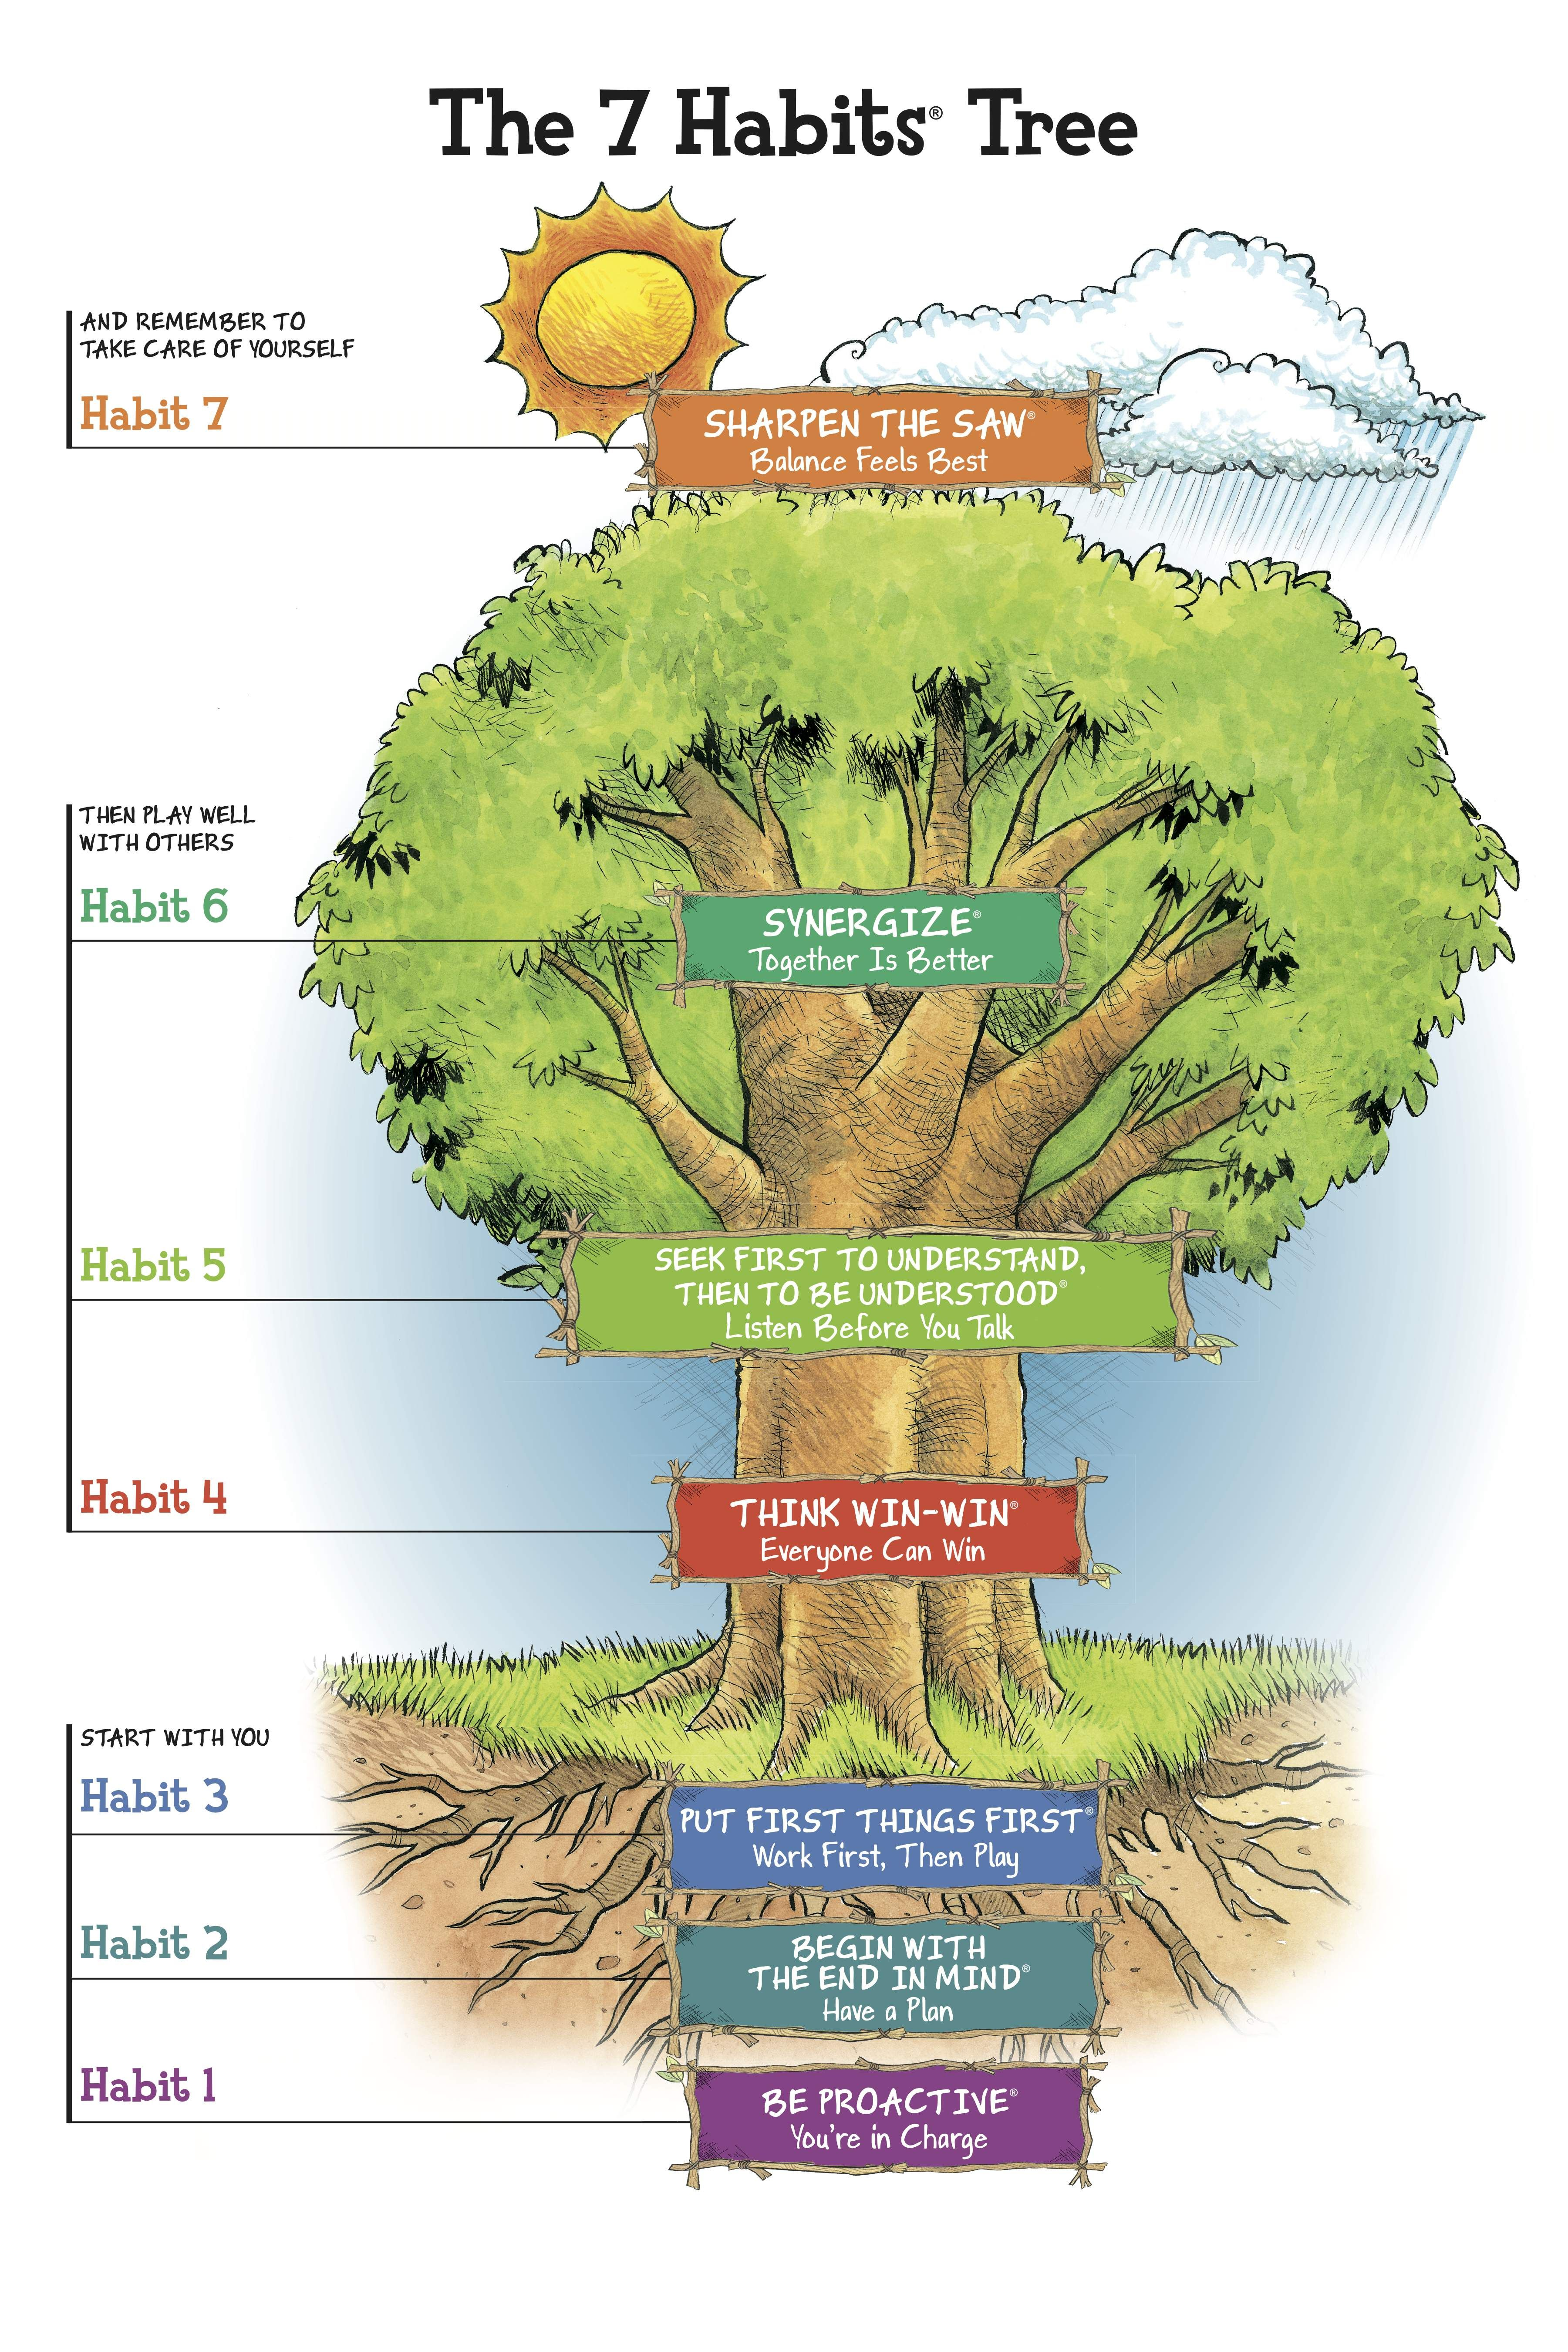 7 habits of highly effective people tree - Google Search | It's ...